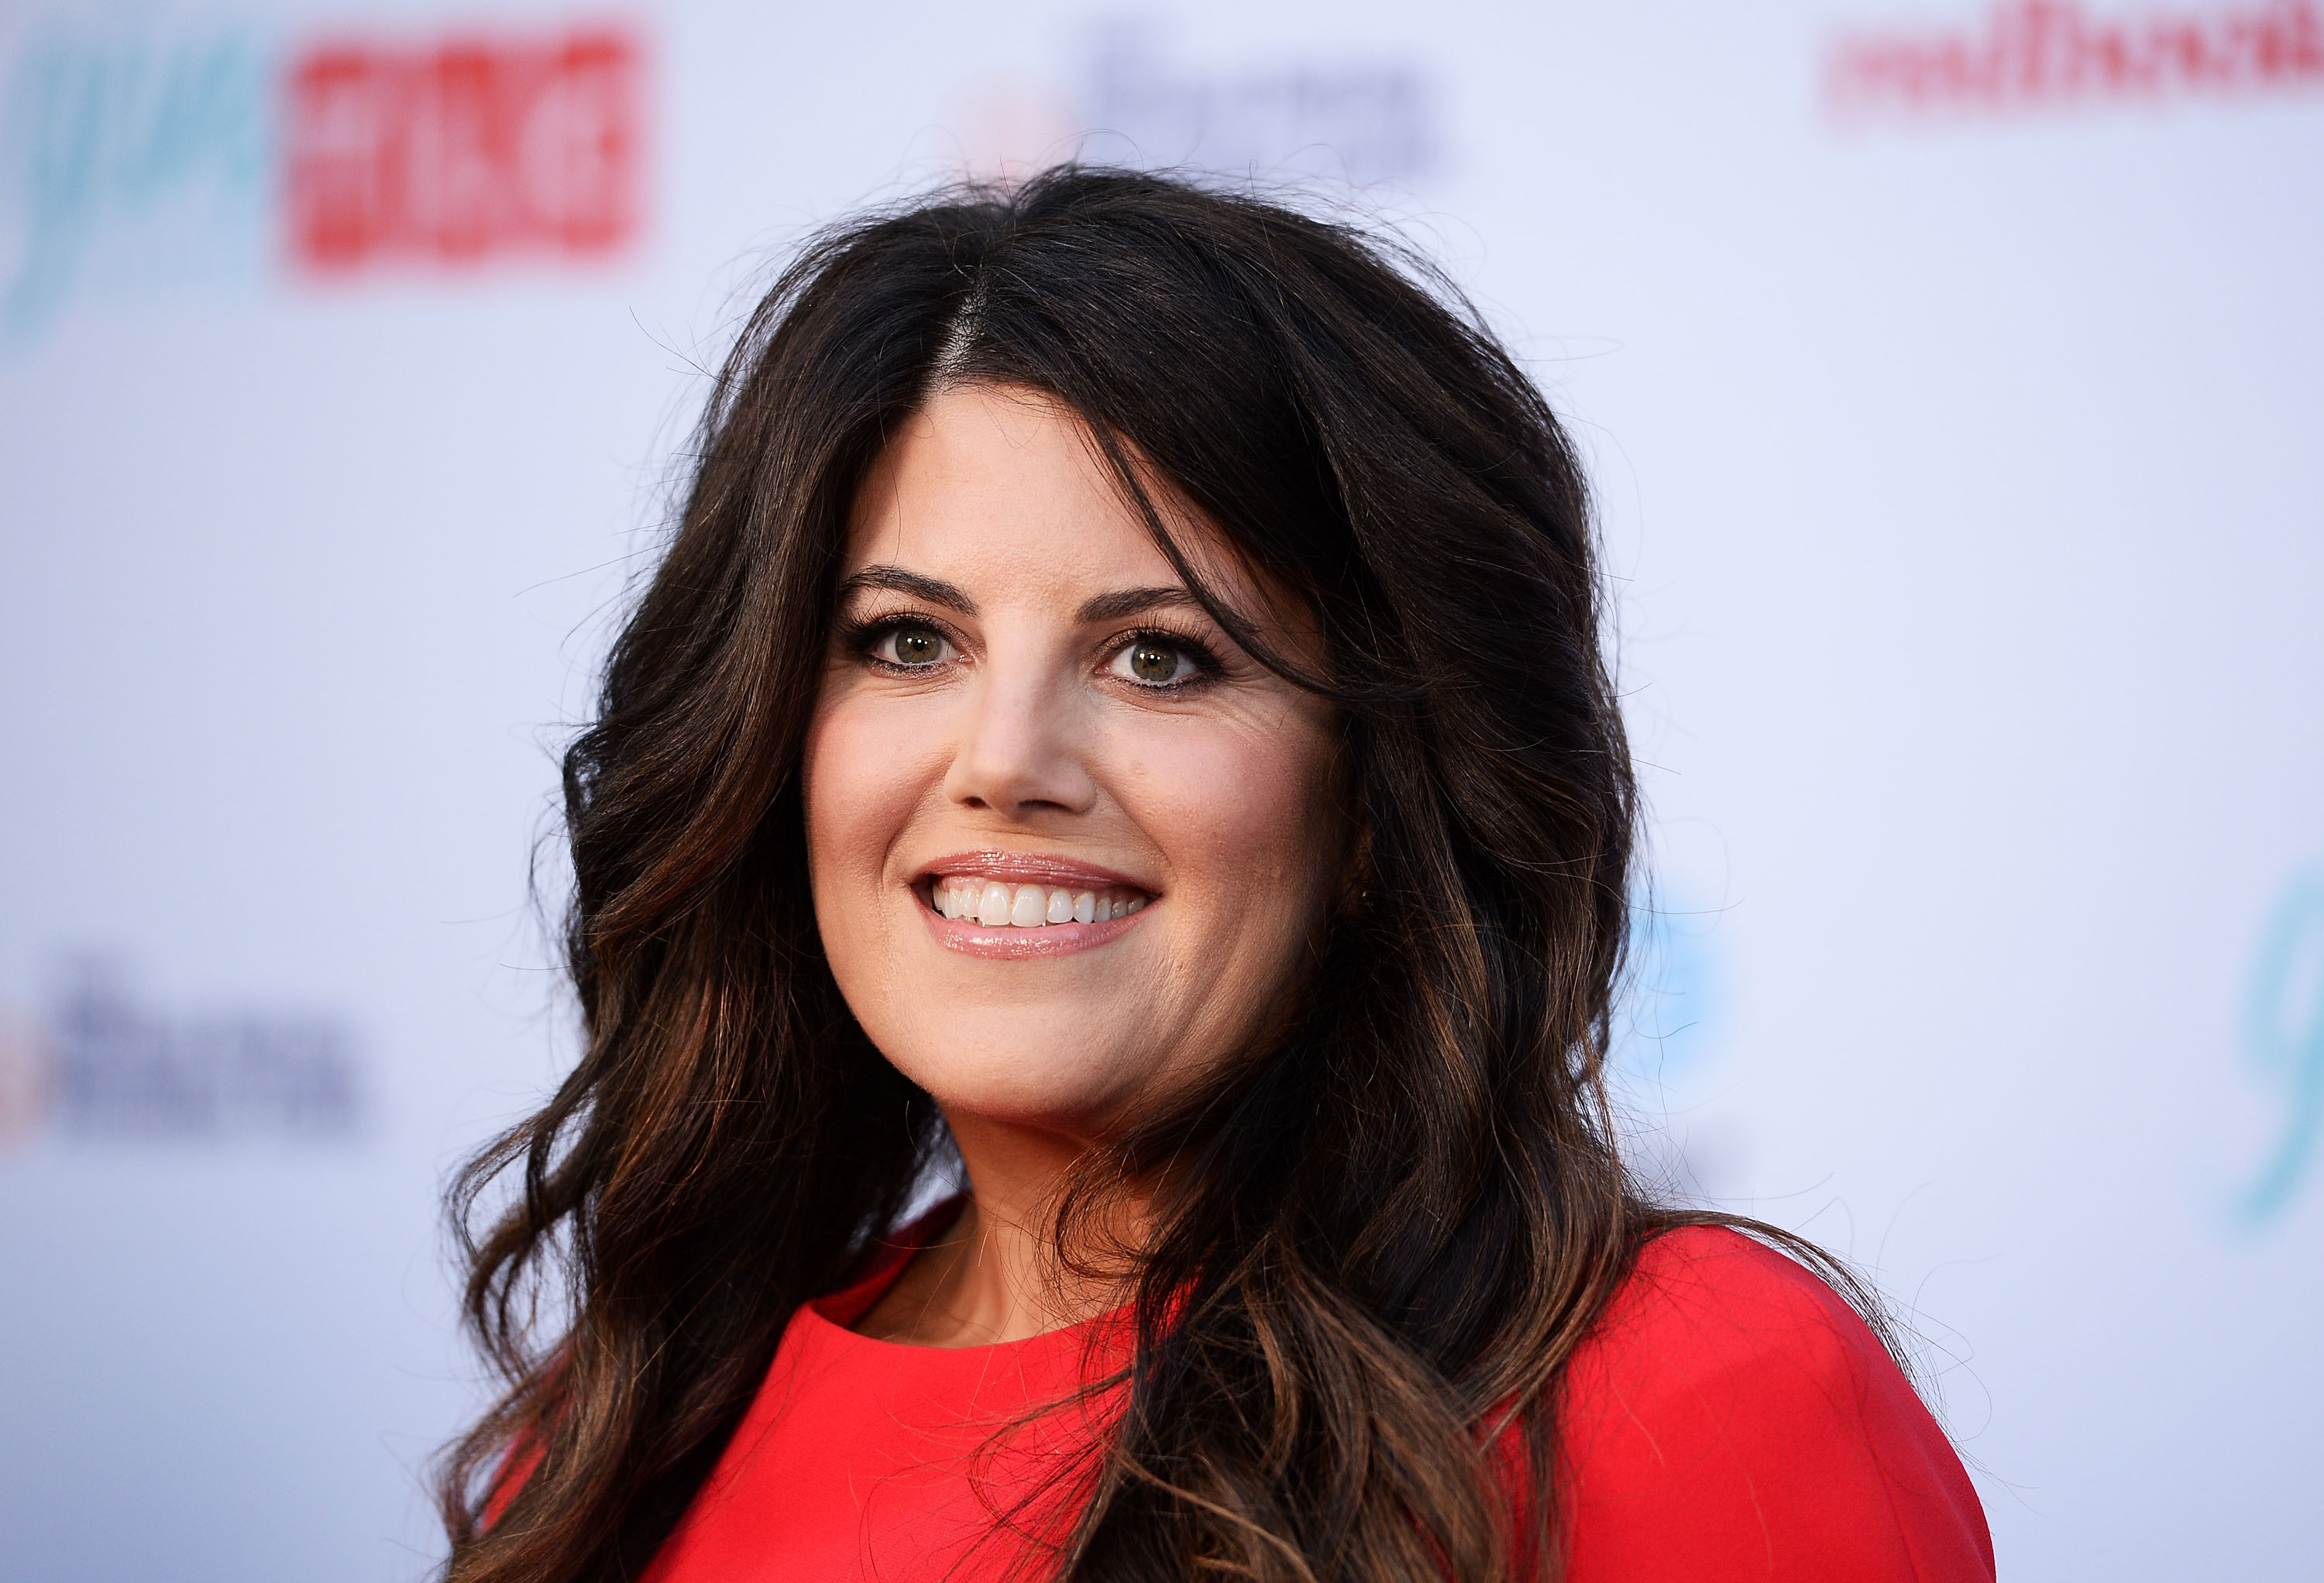 LOS ANGELES, CA - SEPTEMBER 27:  Activist and honoree Monica Lewinsky arrives at TLC's Give A Little Awards at NeueHouse Hollywood on September 27, 2017 in Los Angeles, California.  (Photo by Amanda Edwards/Getty Images,)